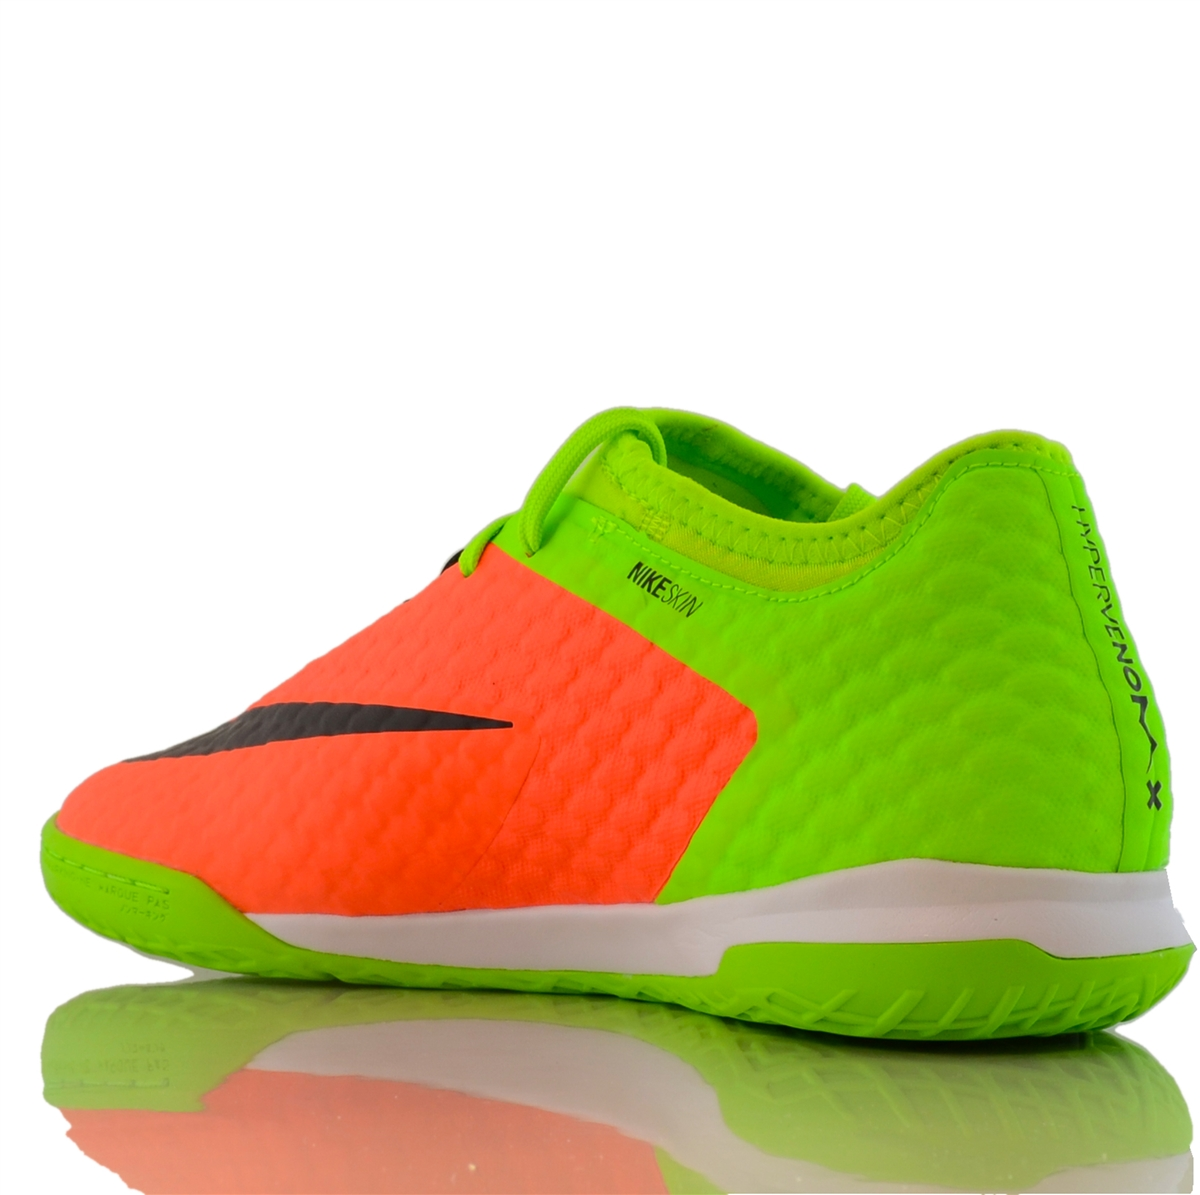 e67572f5f453 Nike HypervenomX Finale II IC Indoor Soccer Shoes (Electric Green ...